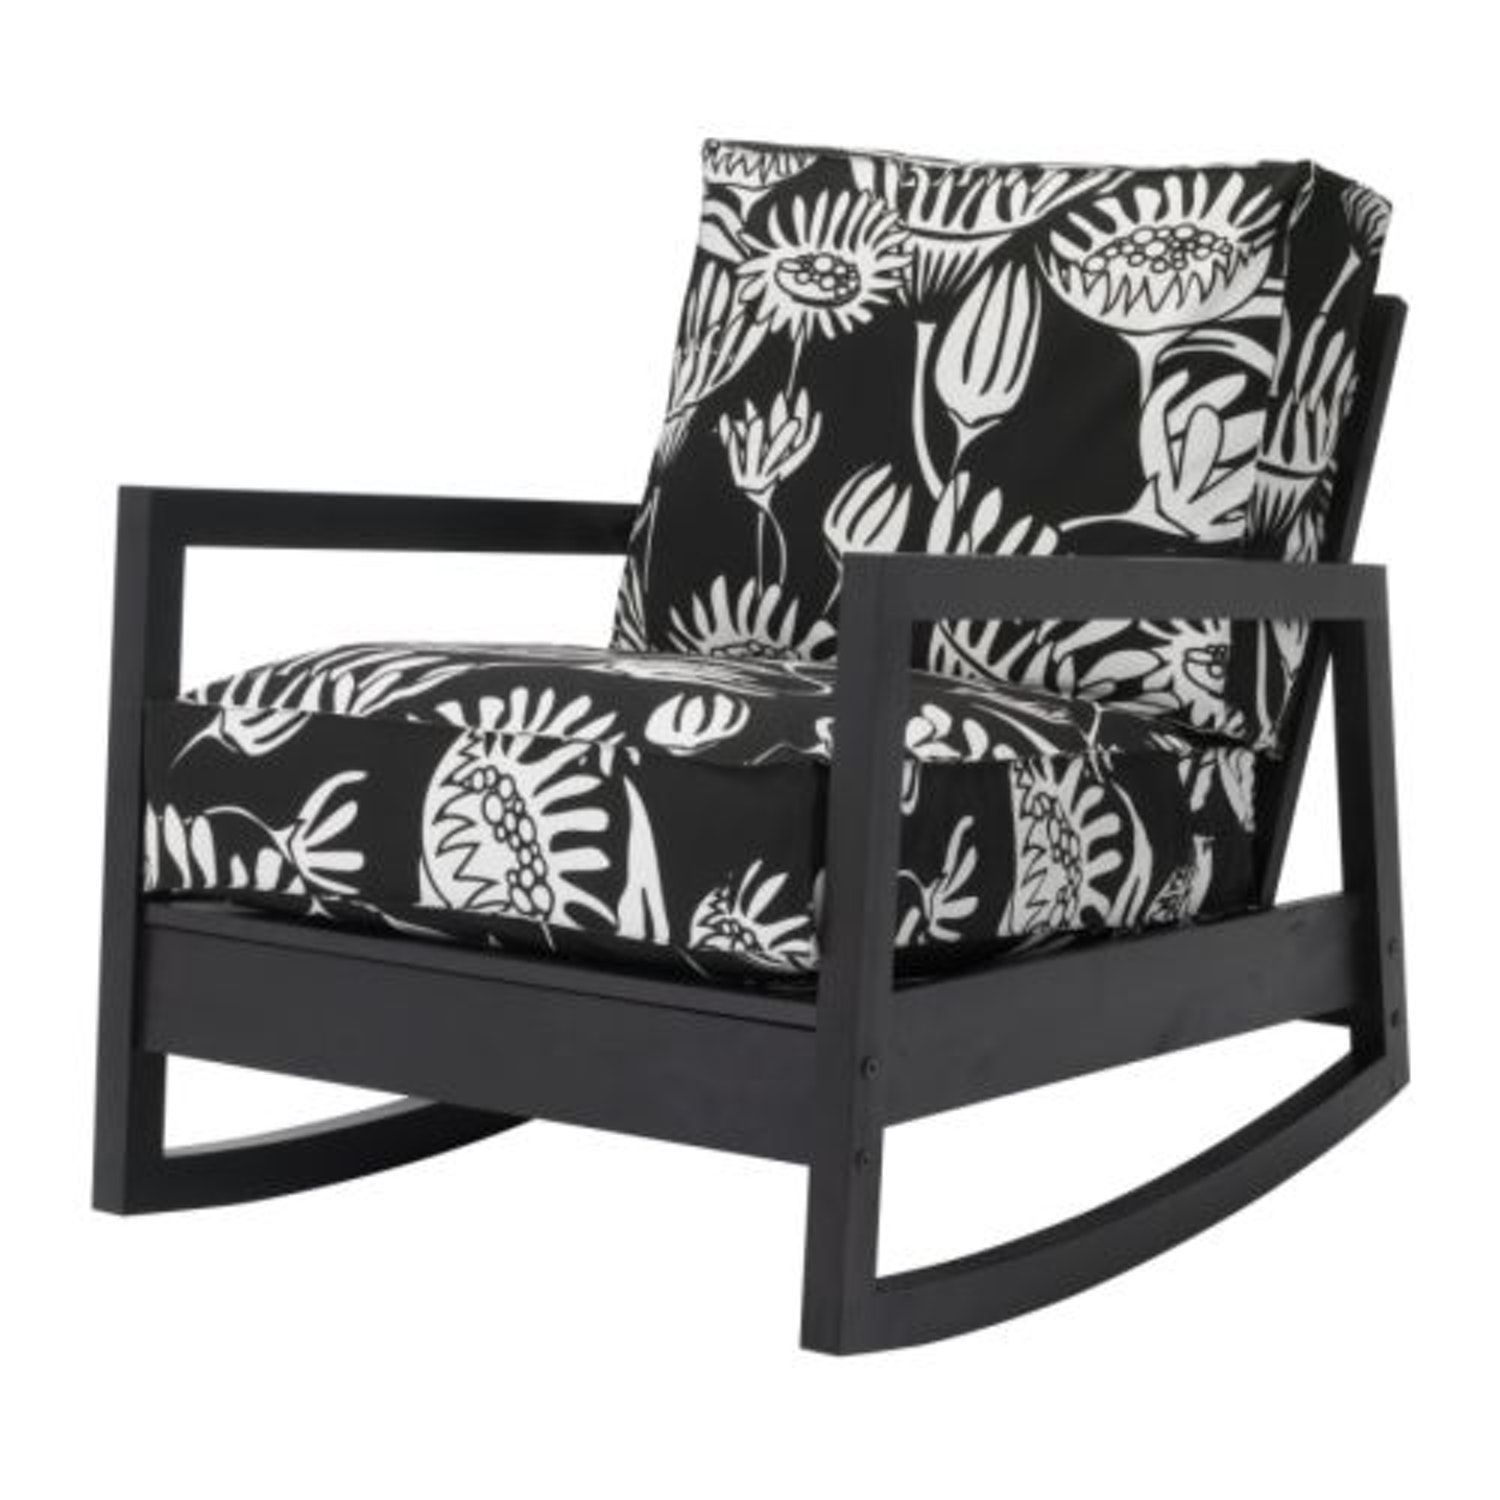 New IKEA Lillberg Rocker Slipcovers for chairs